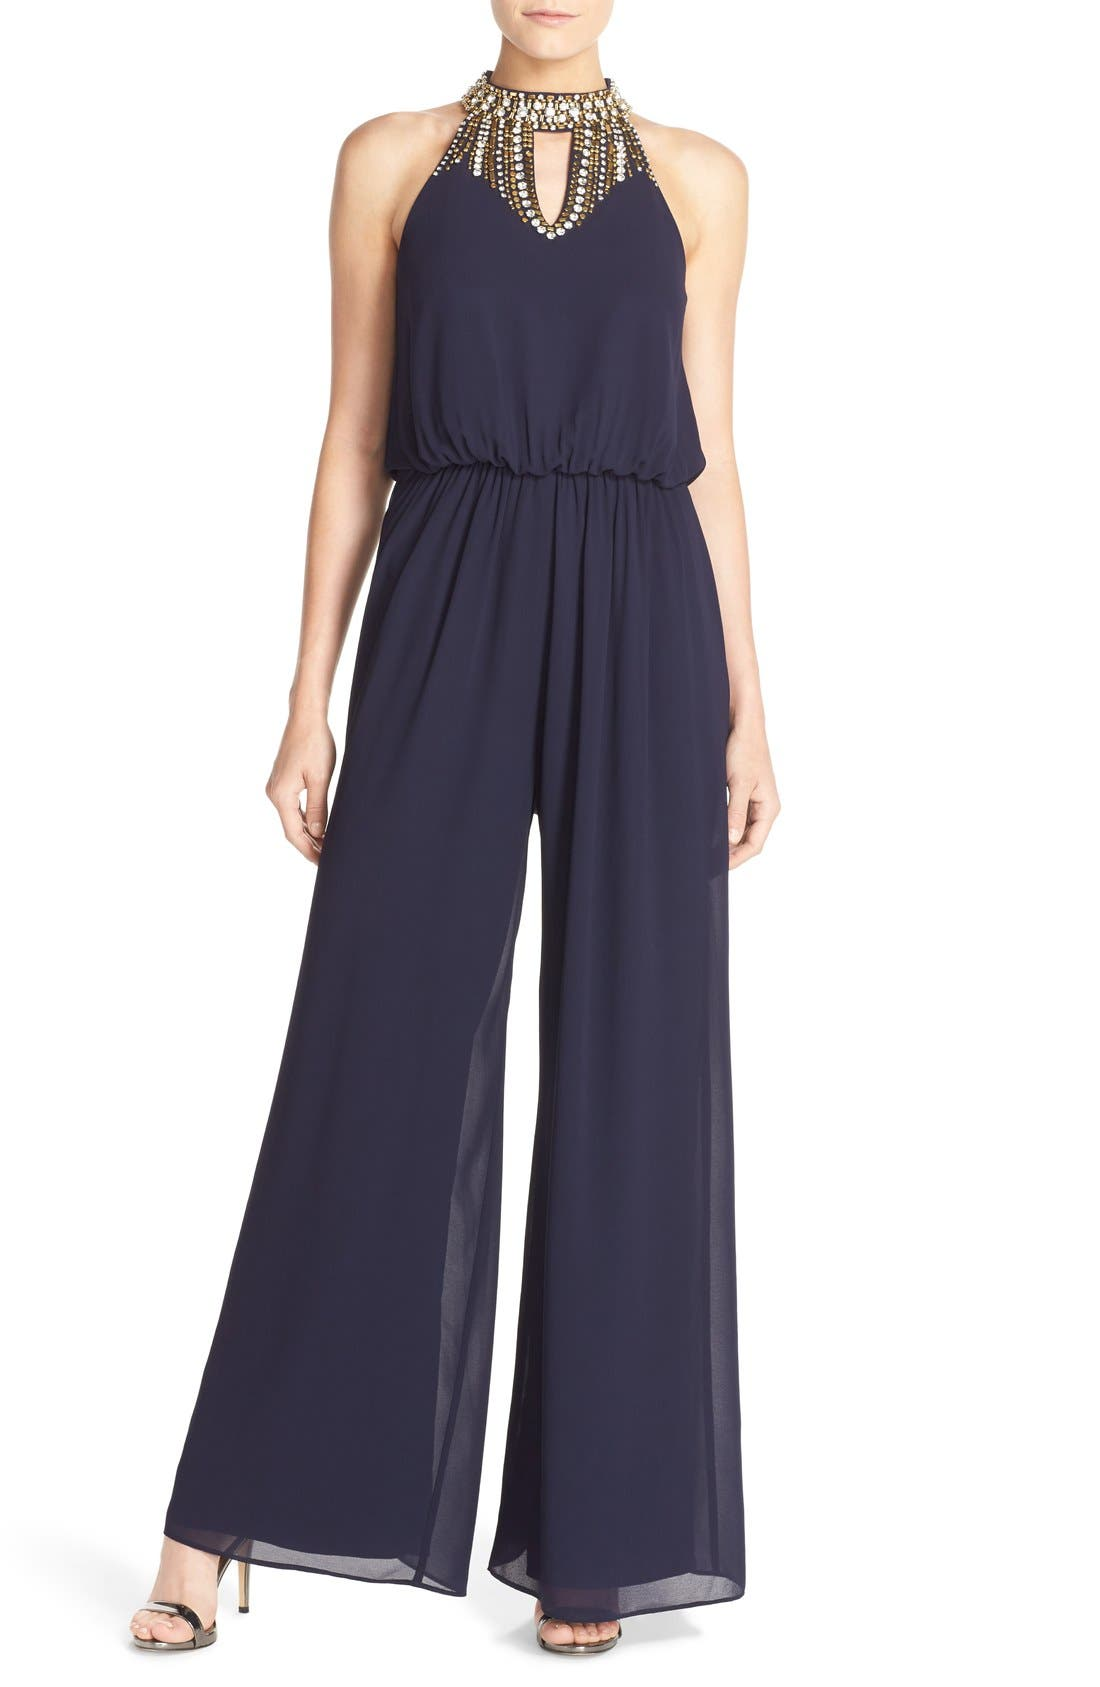 Alternate Image 1 Selected - Vince Camuto Beaded Neck Jumpsuit